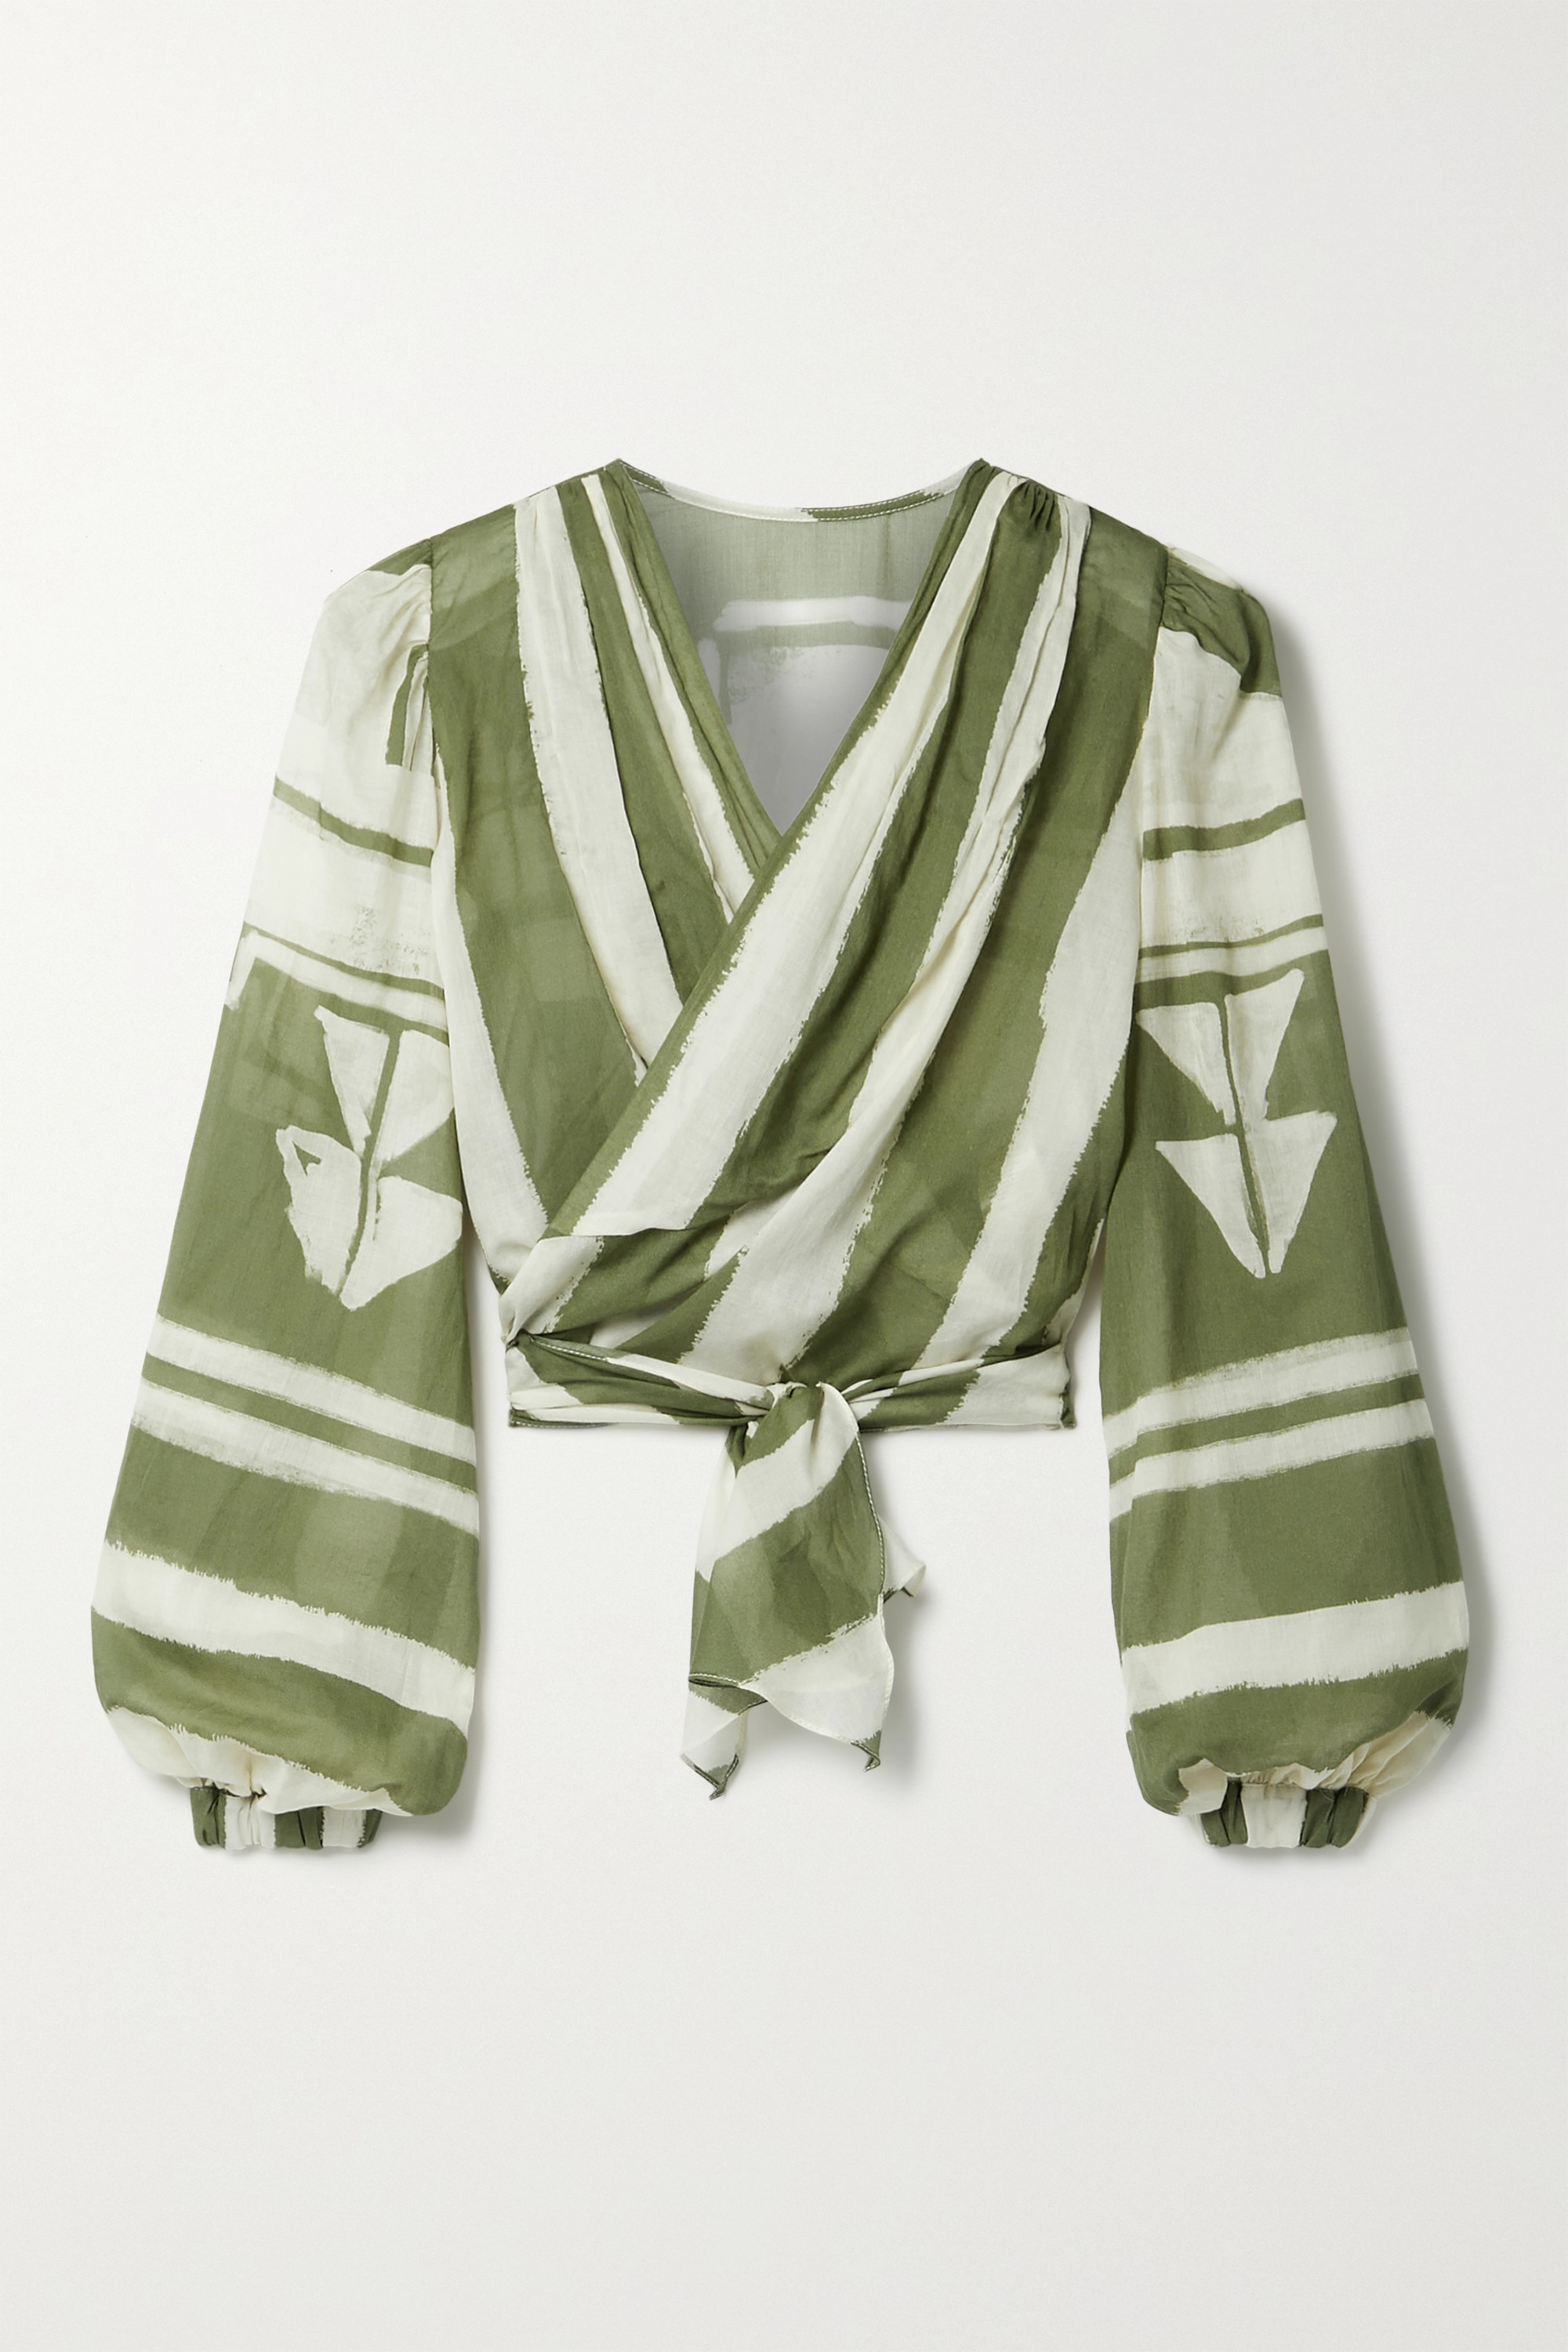 Johanna Ortiz + NET SUSTAIN Camino Inca cropped printed organic cotton-voile wrap top